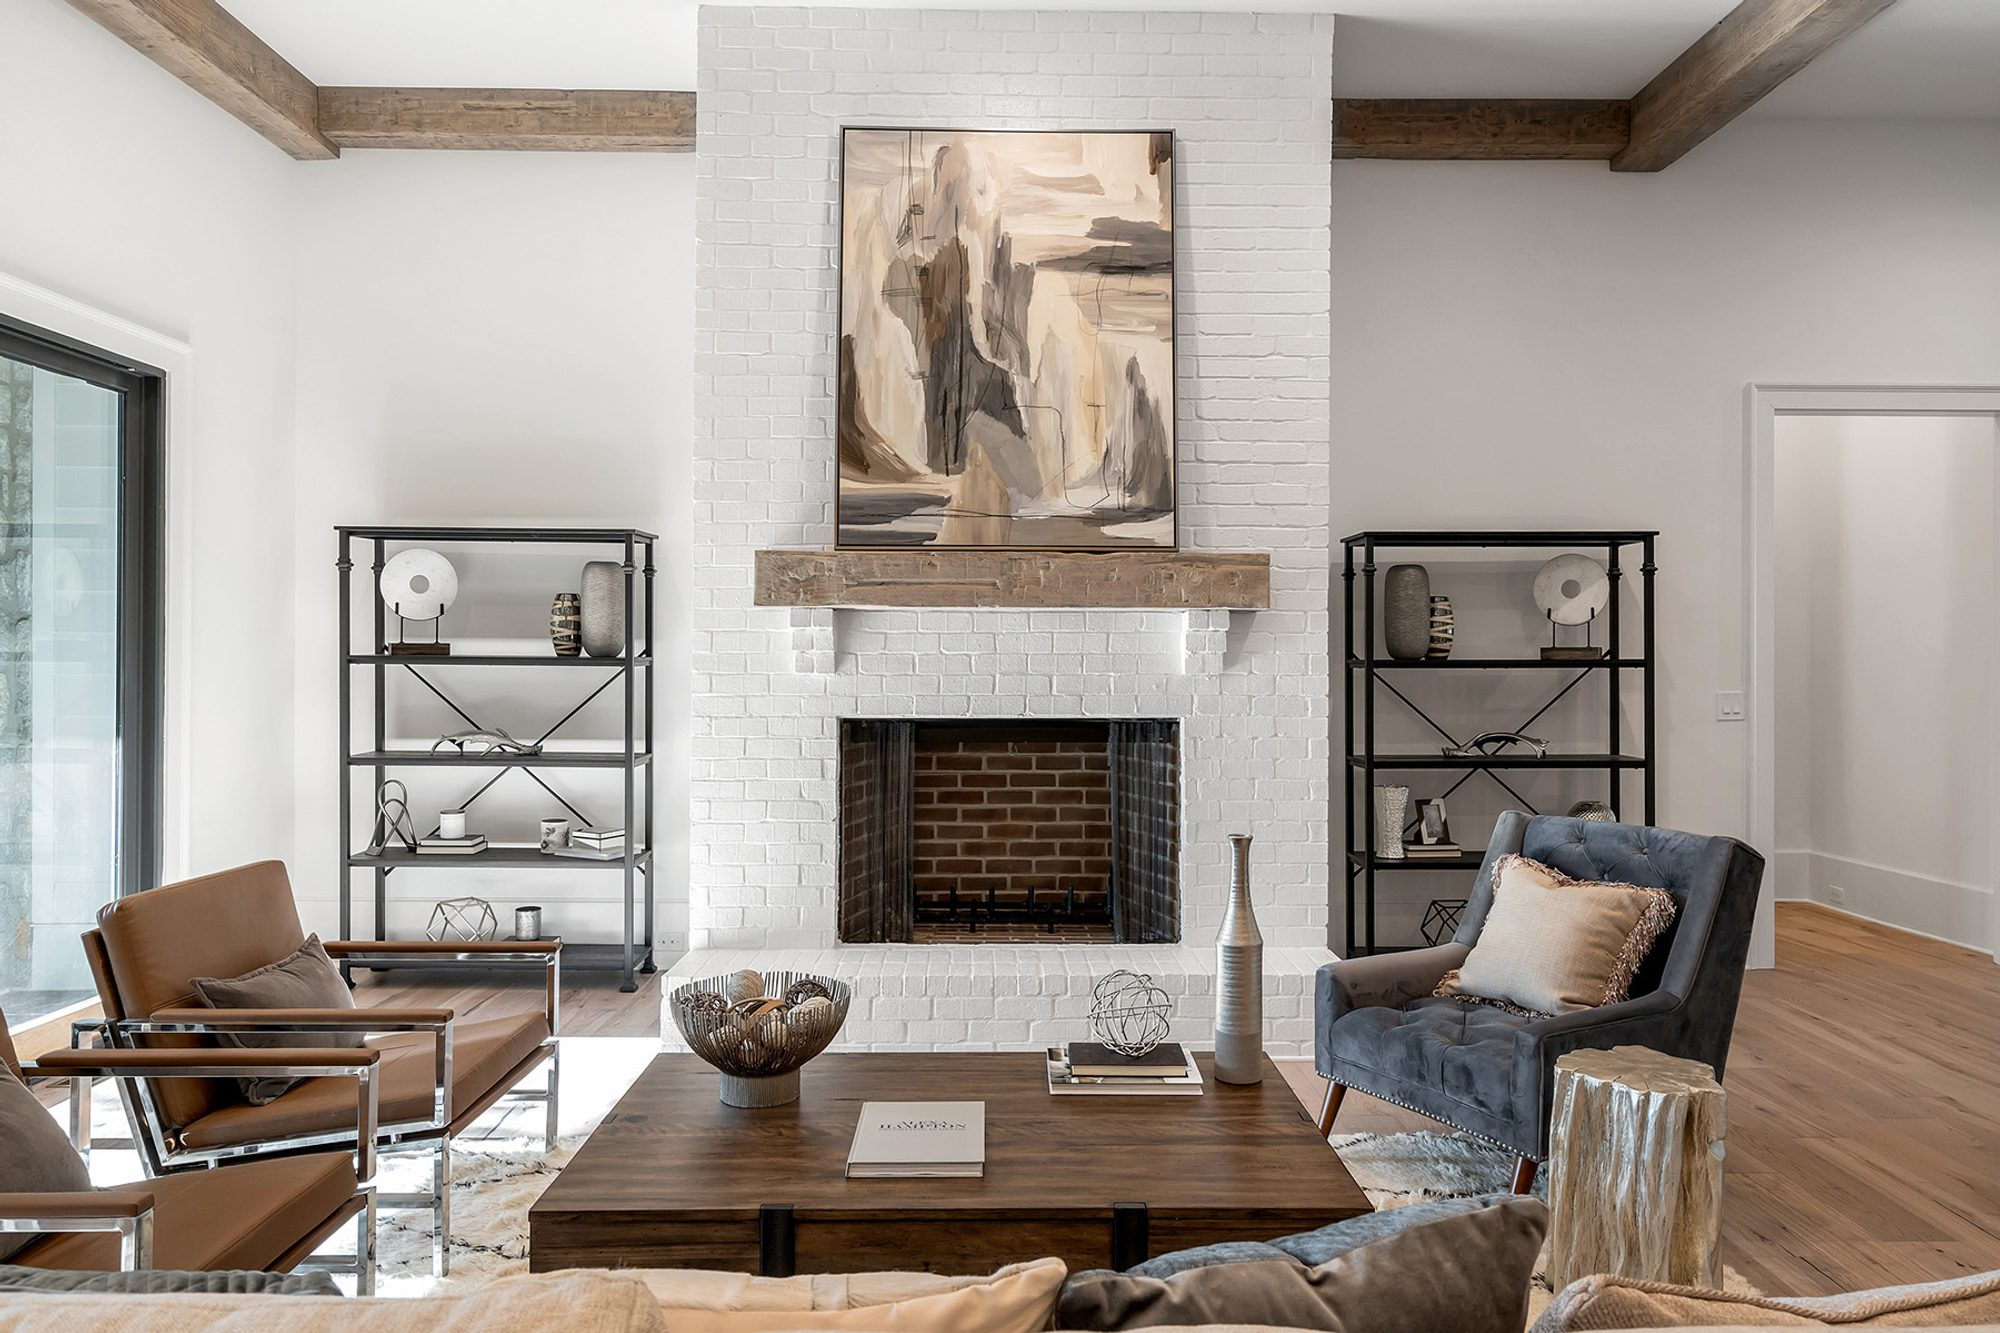 Wood burning fireplace with painted white brick and a thick wood shelf. Matching ceiling beams.